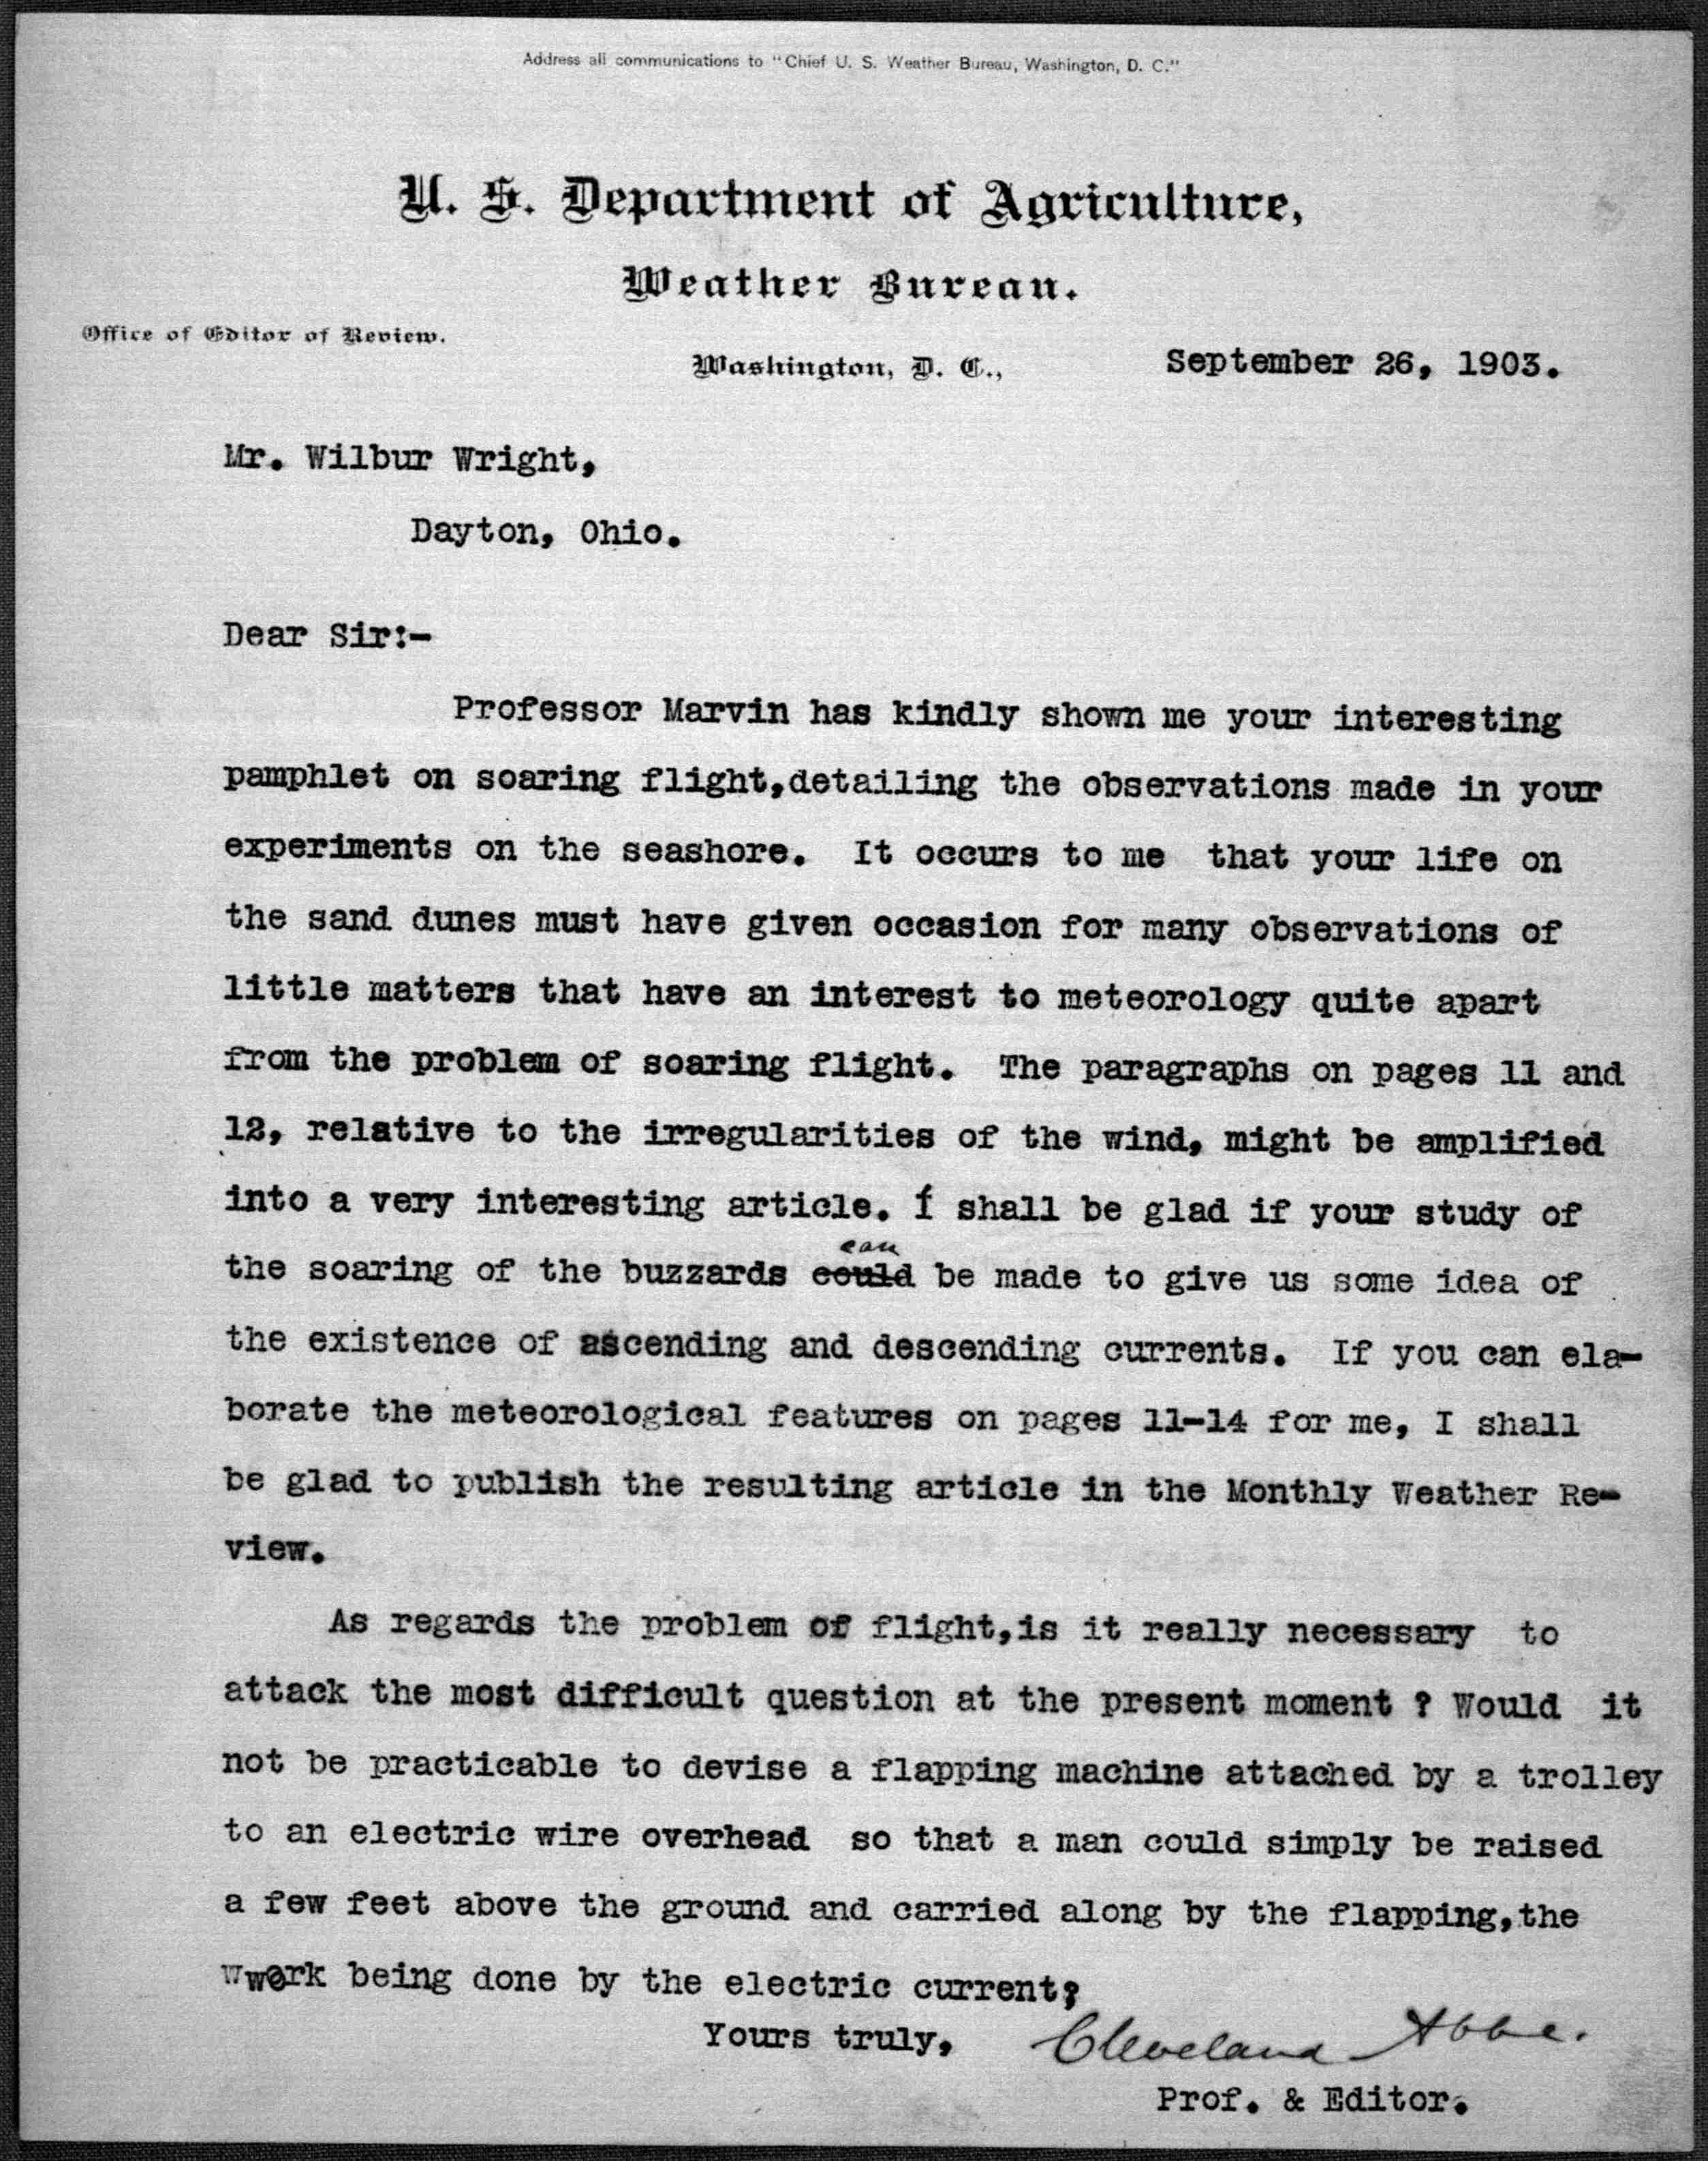 File:Cleveland Abbe letter to Wilbur Wright, September 26, 1903